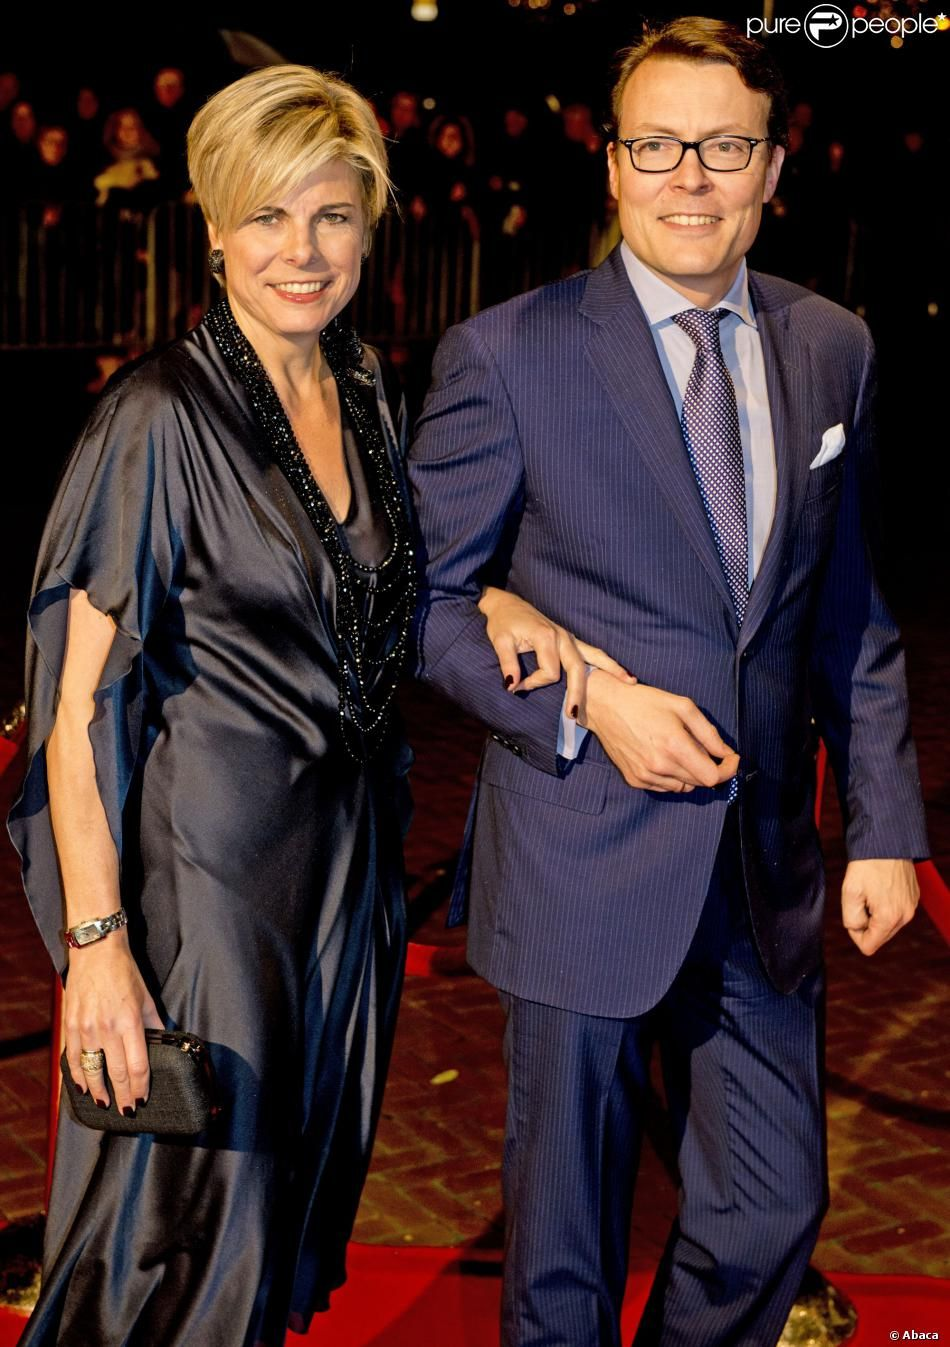 Princess Laurentien and Prince Constantijn The royal